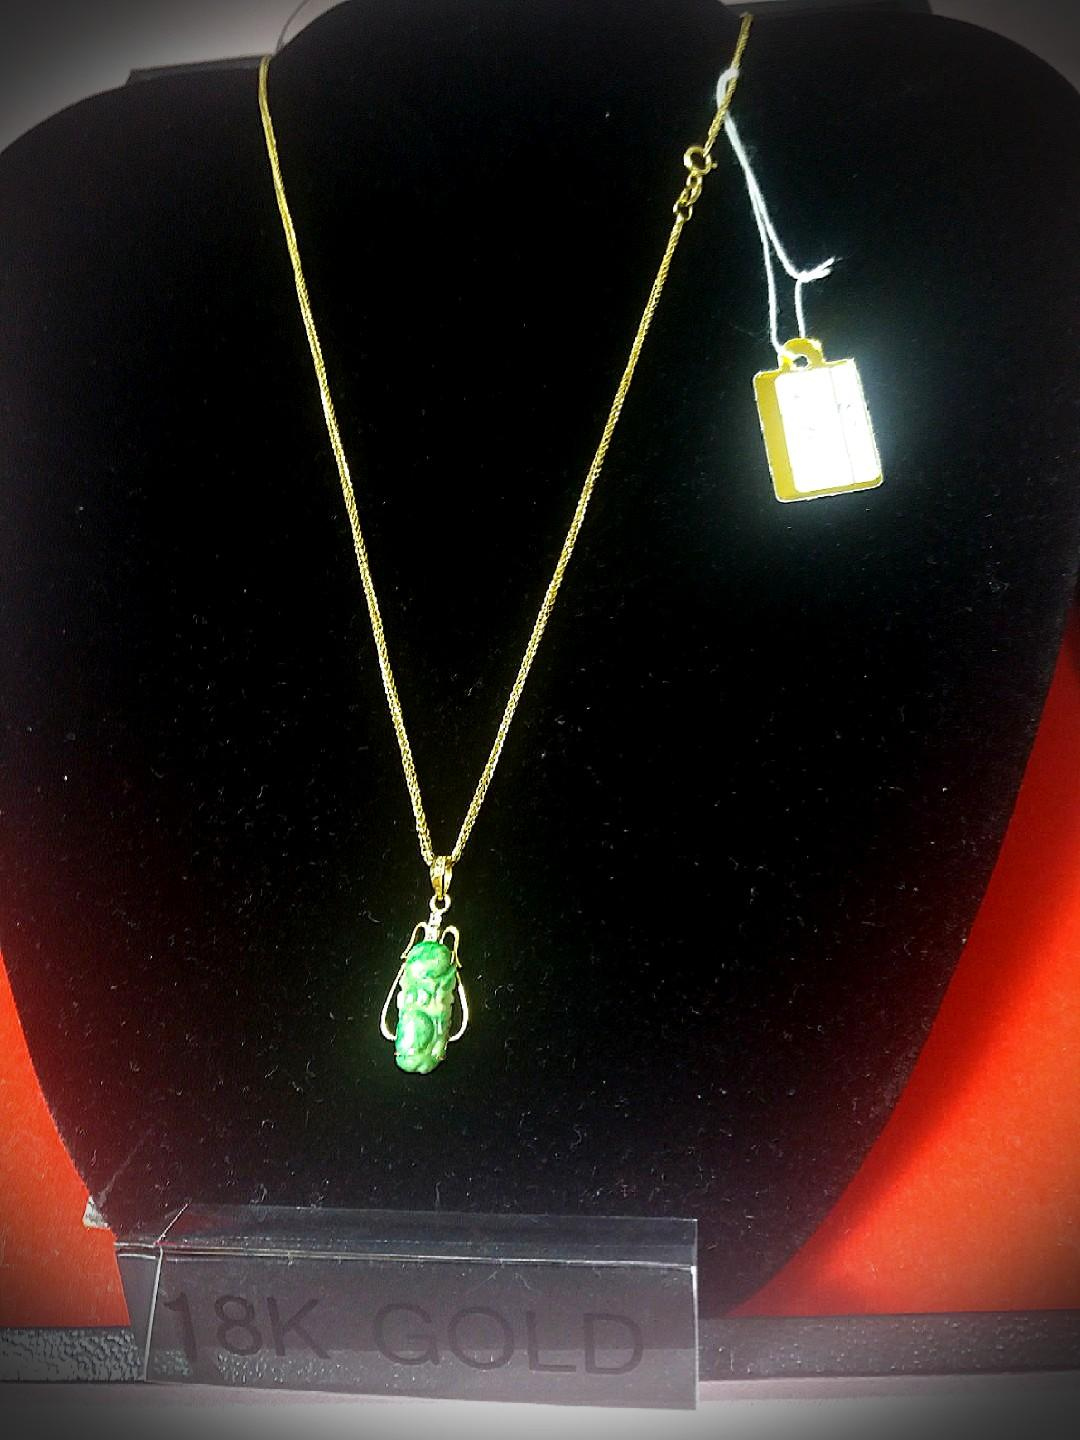 New Arrival! Promotional Fixed Sales! 18K Solid Gold with 2 Diamonds Natural Jadeite A Burmese  Pendant with Solid Gold 18K Gold Chain.  Come with Elegant Red Box for yourself or as Gift to Loves Ones!